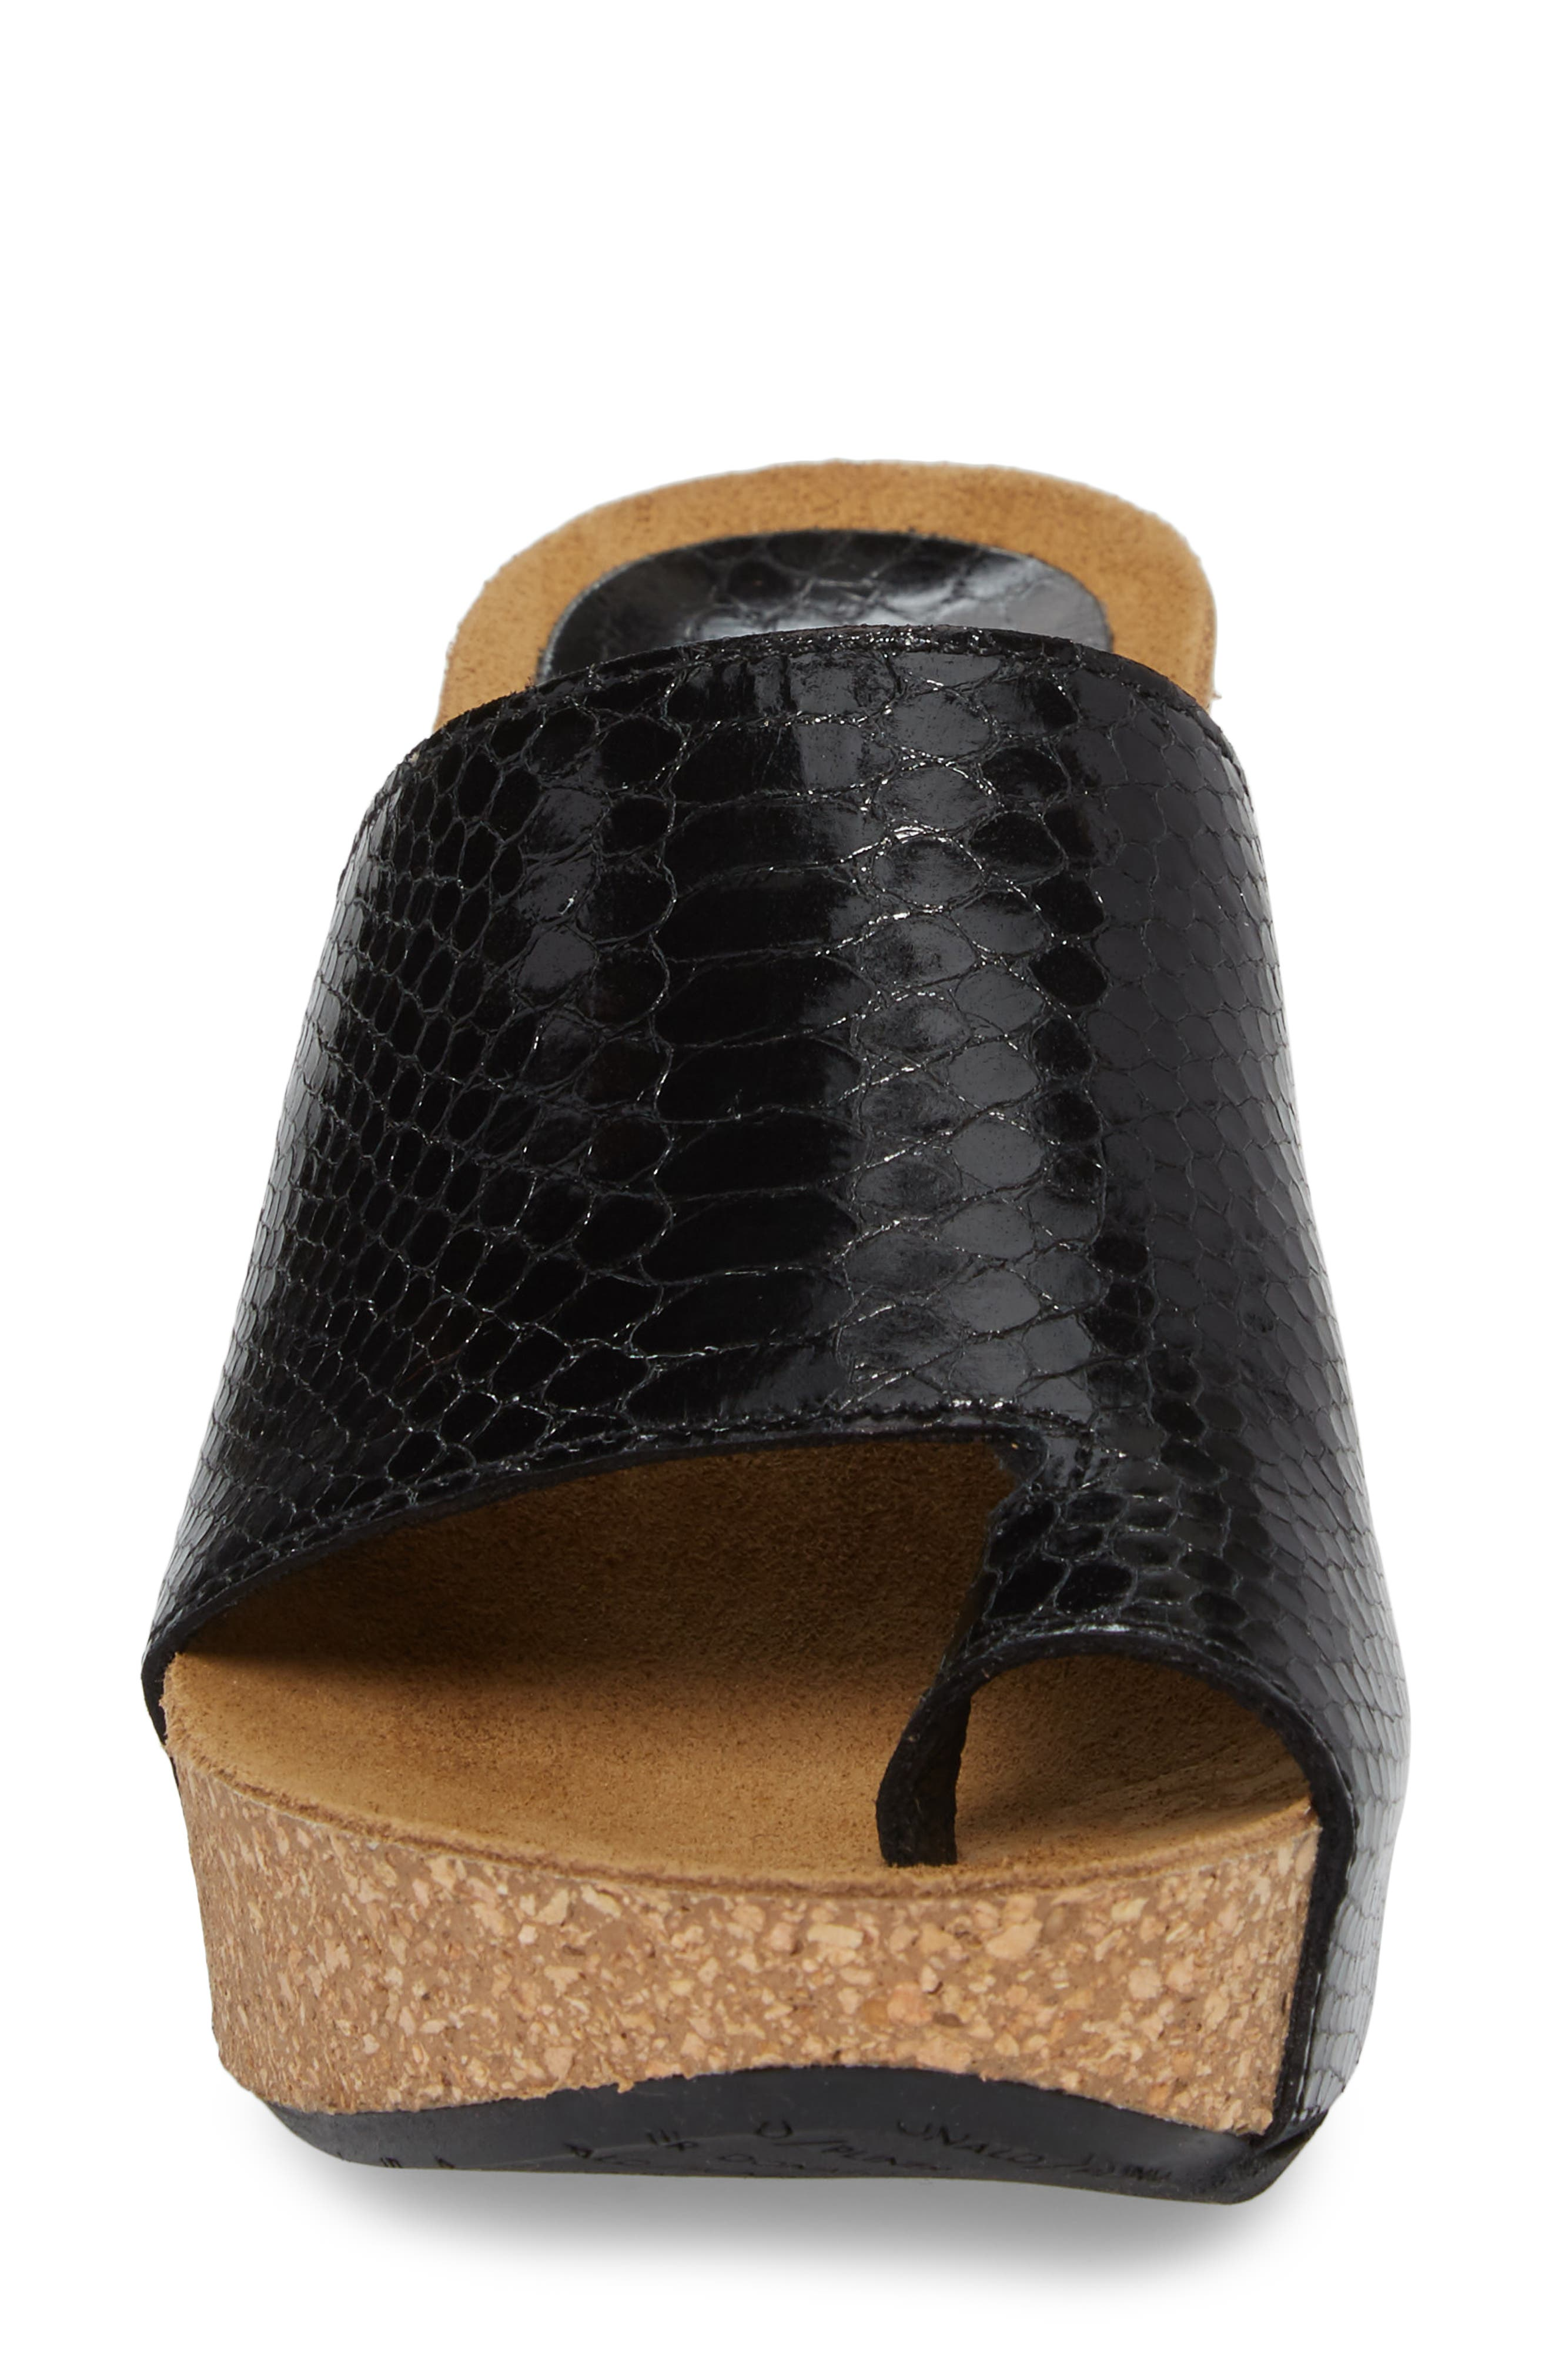 Donald J Pliner Ginie Platform Wedge Sandal,                             Alternate thumbnail 23, color,